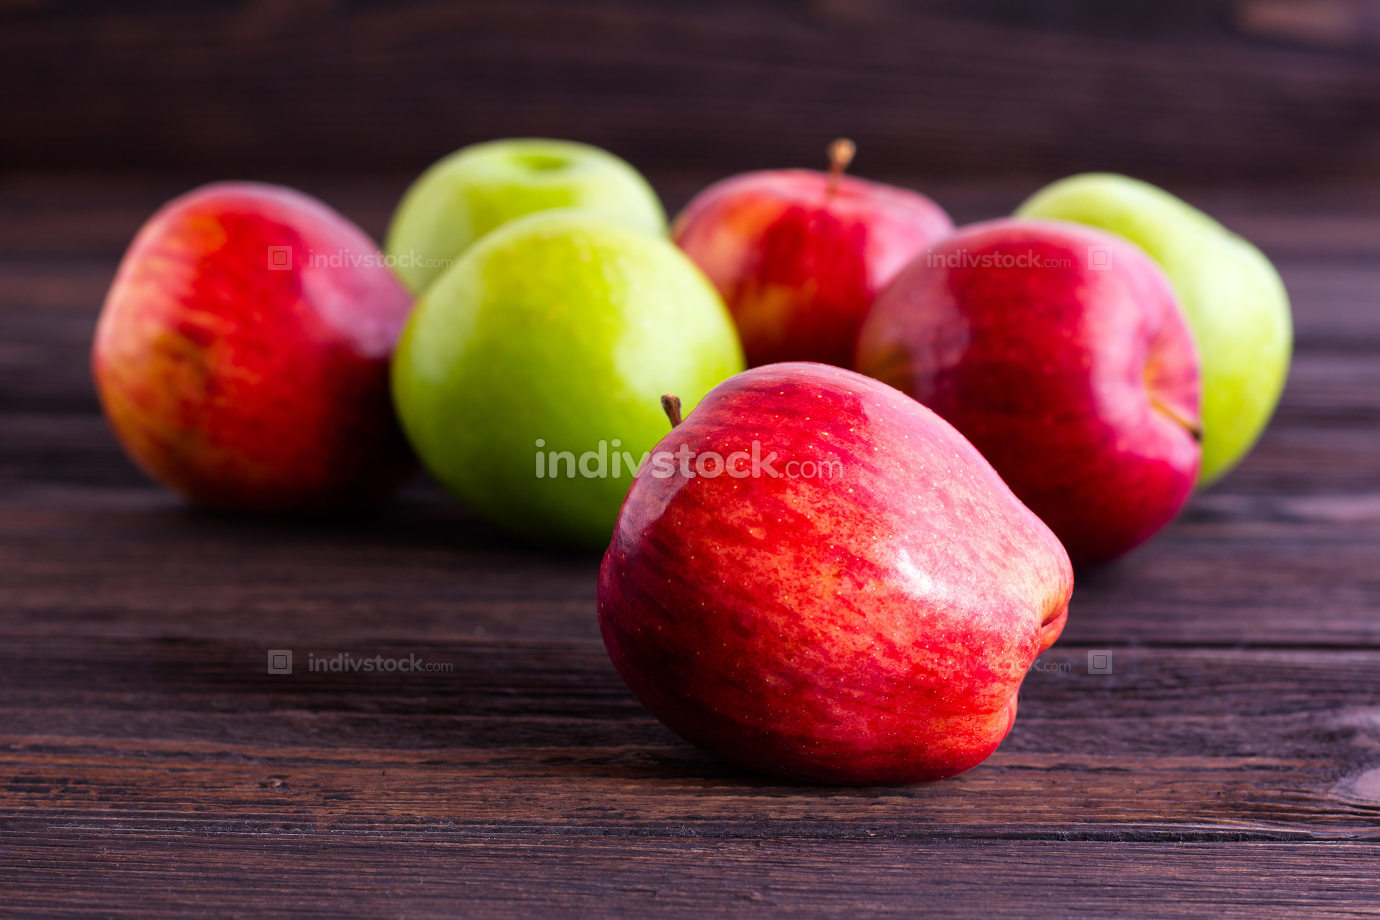 Red and Green Apples on wooden table.